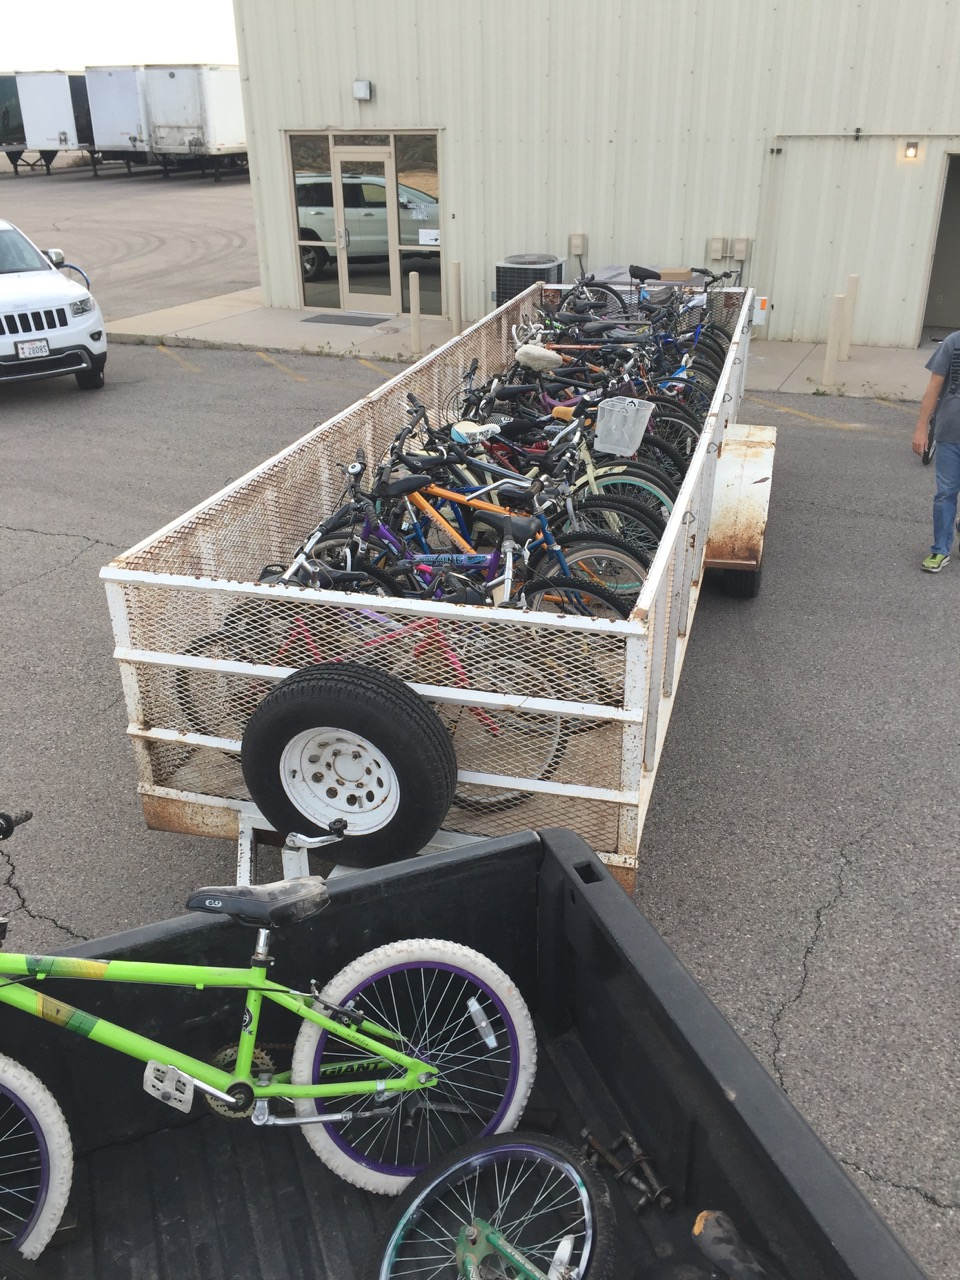 Trailer full of bikes donated to the Bicycle Collective of Southern Utah by the City of St. George. April 8, 2016 | Photo by Dannielle Larkin, St. George News